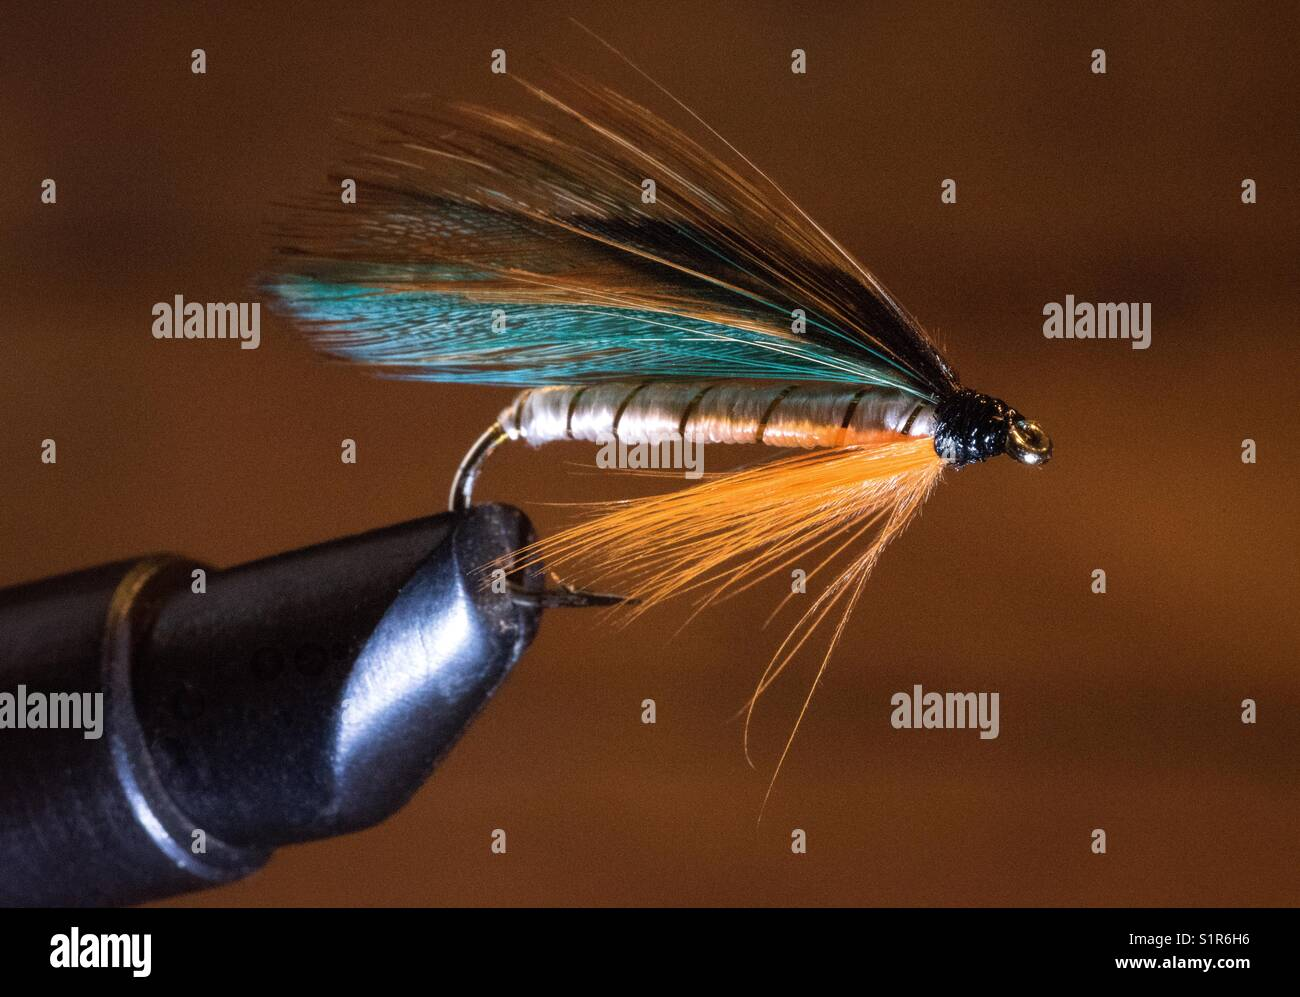 Tying a fly Stock Photo